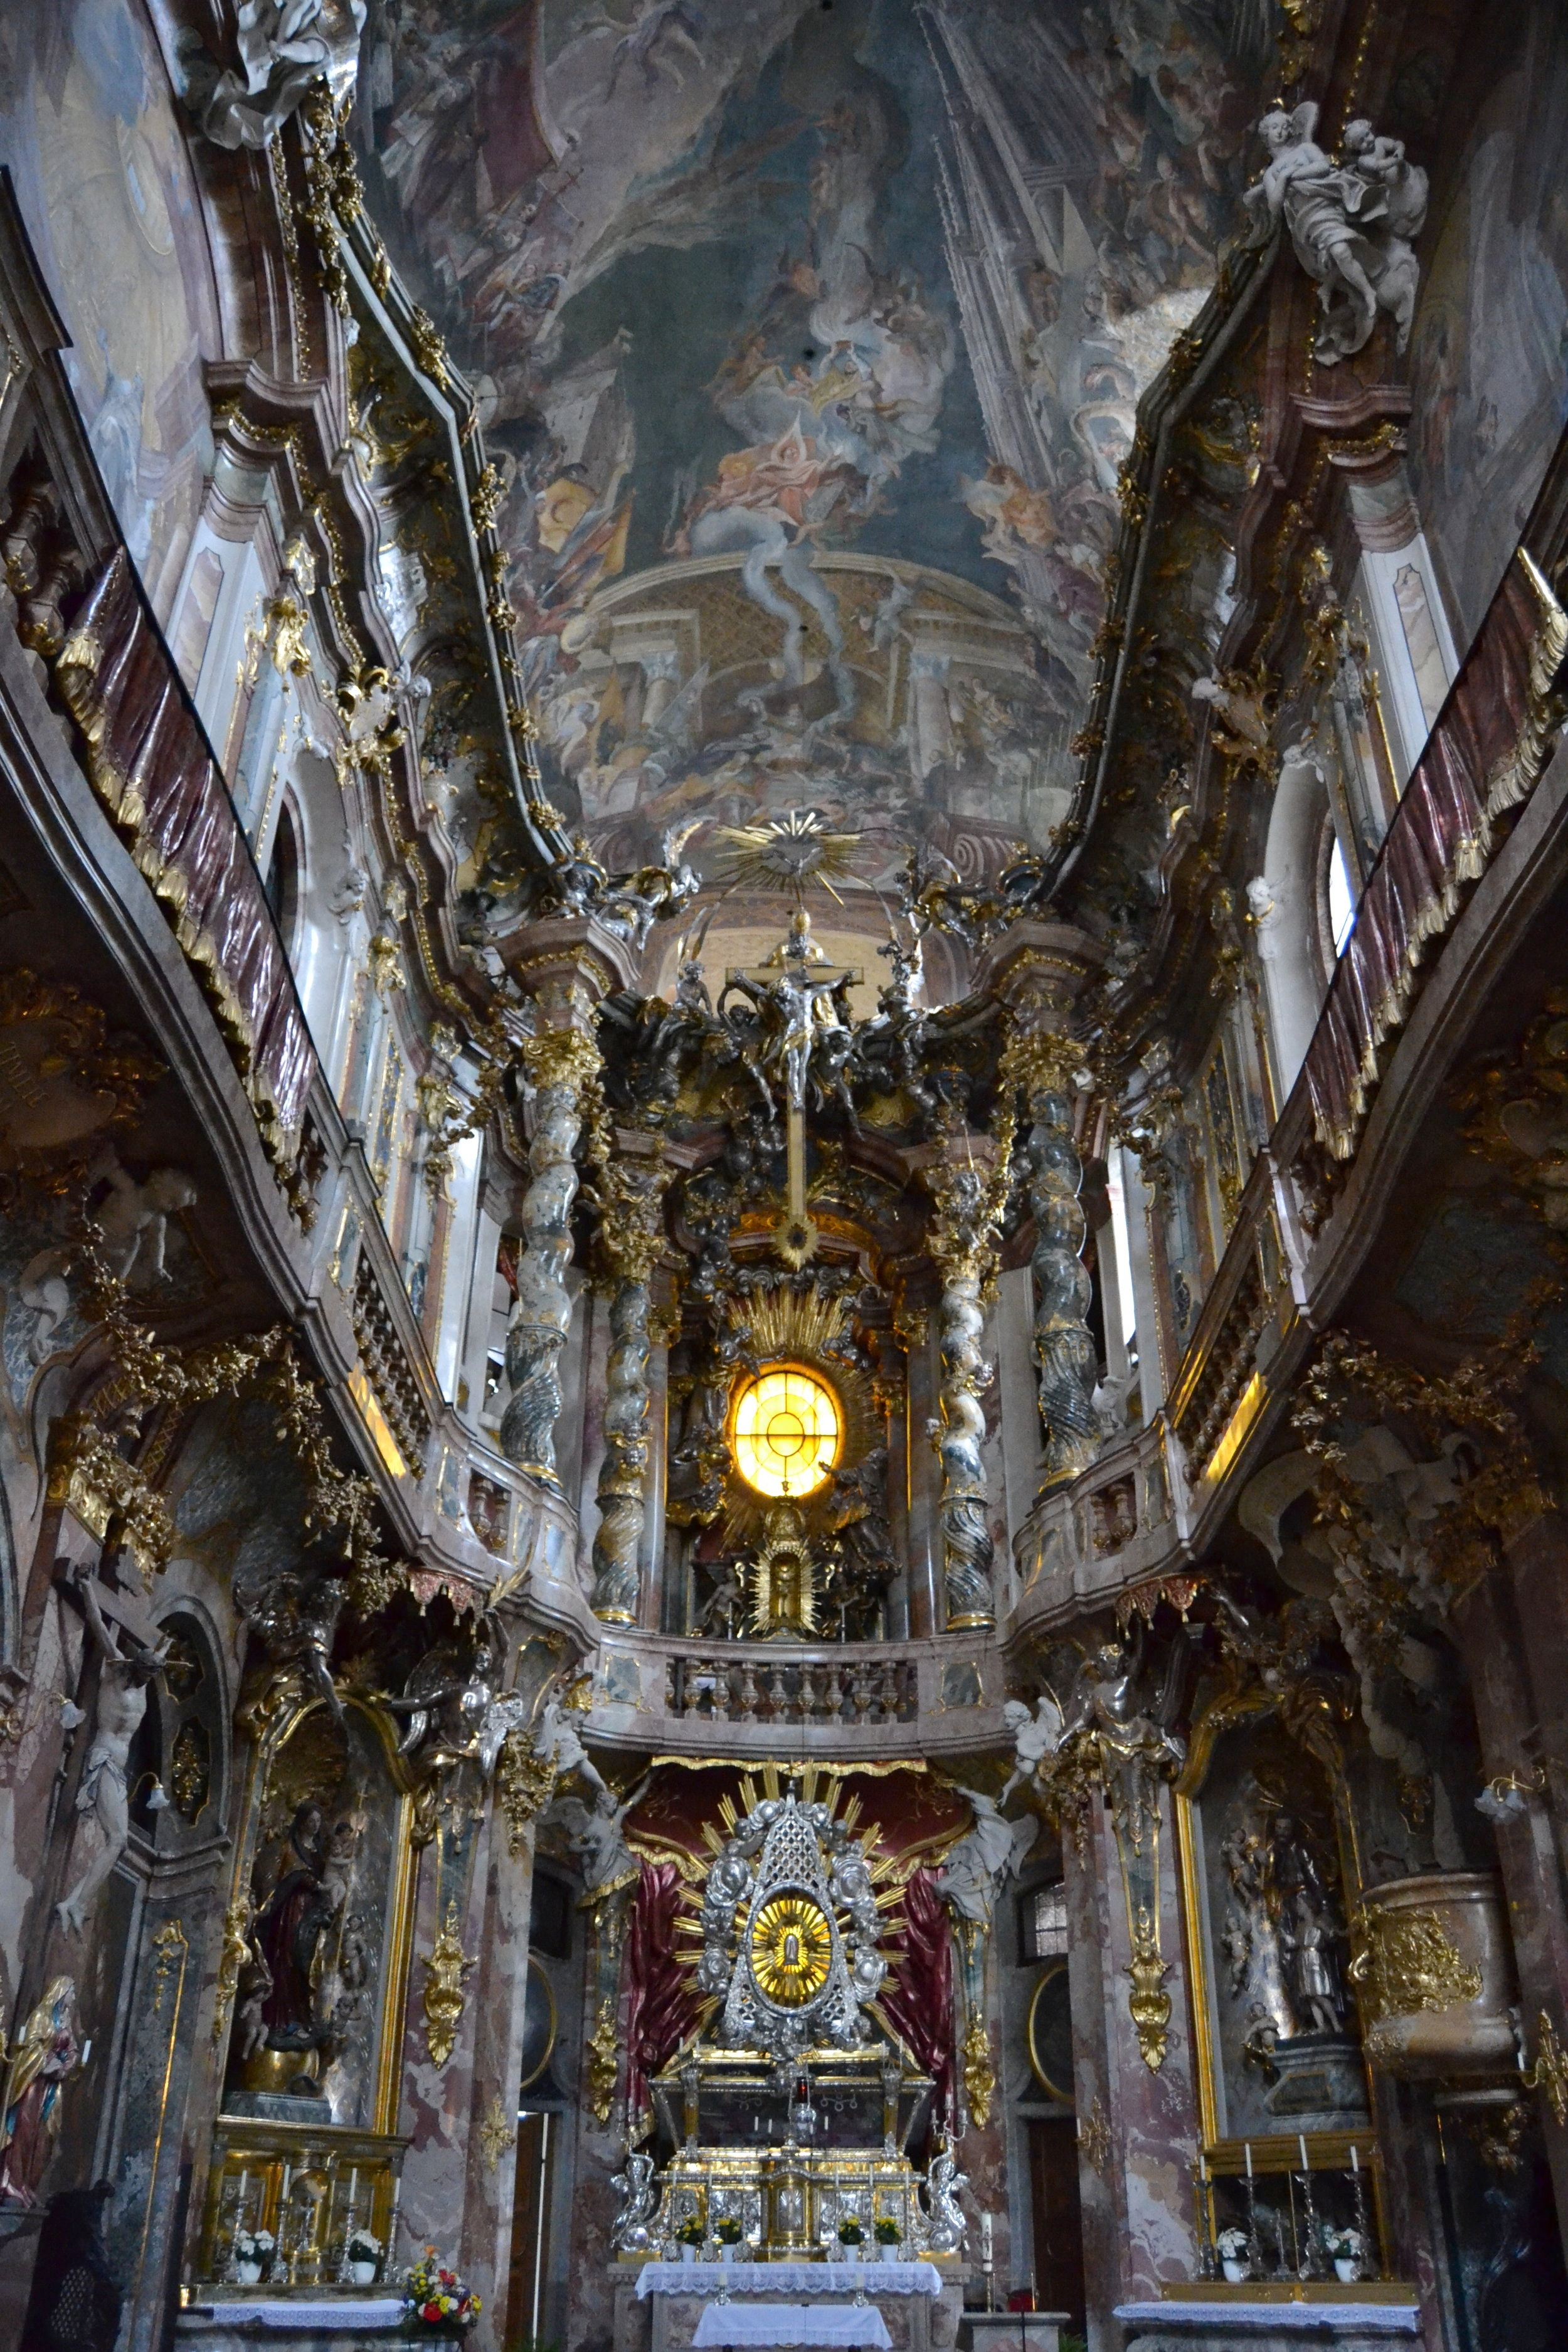 A view looking toward the altar in the Asamkirche